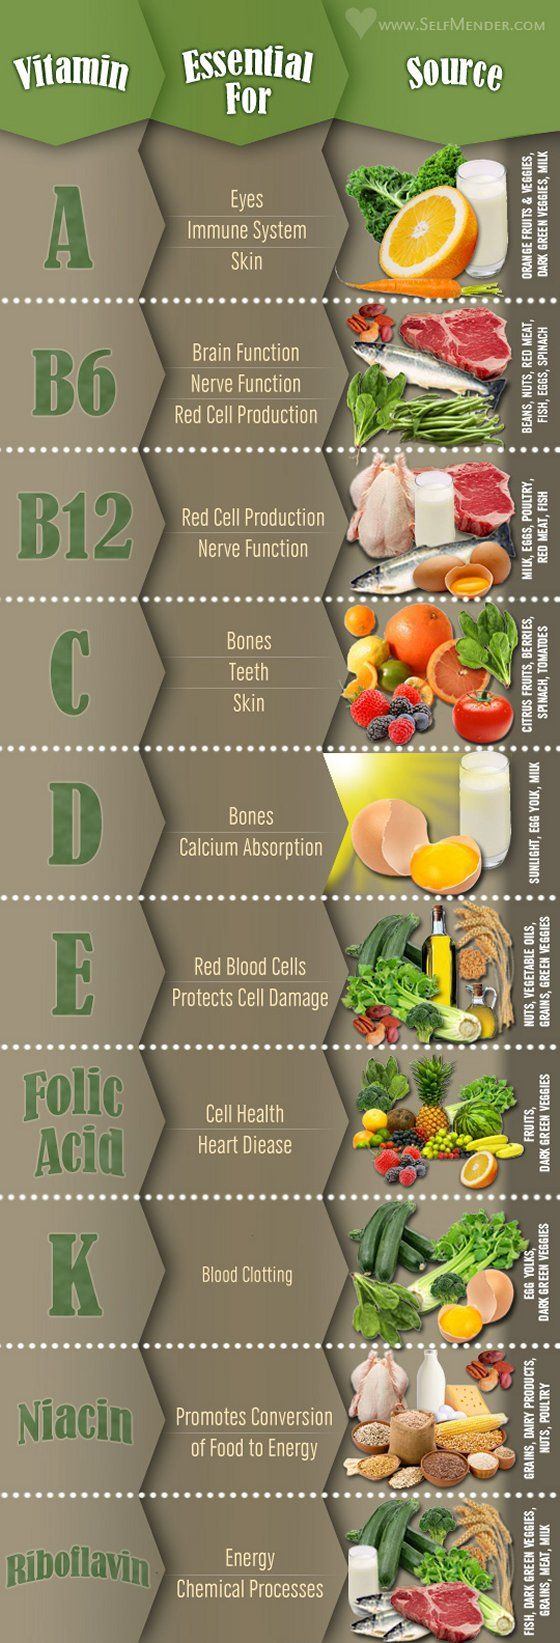 Essential Guide to Essential Vitamins & Their Food Sources [Infographic] I want to print this out and post on the fridge for my kids to see ;) | Health | Pinte…